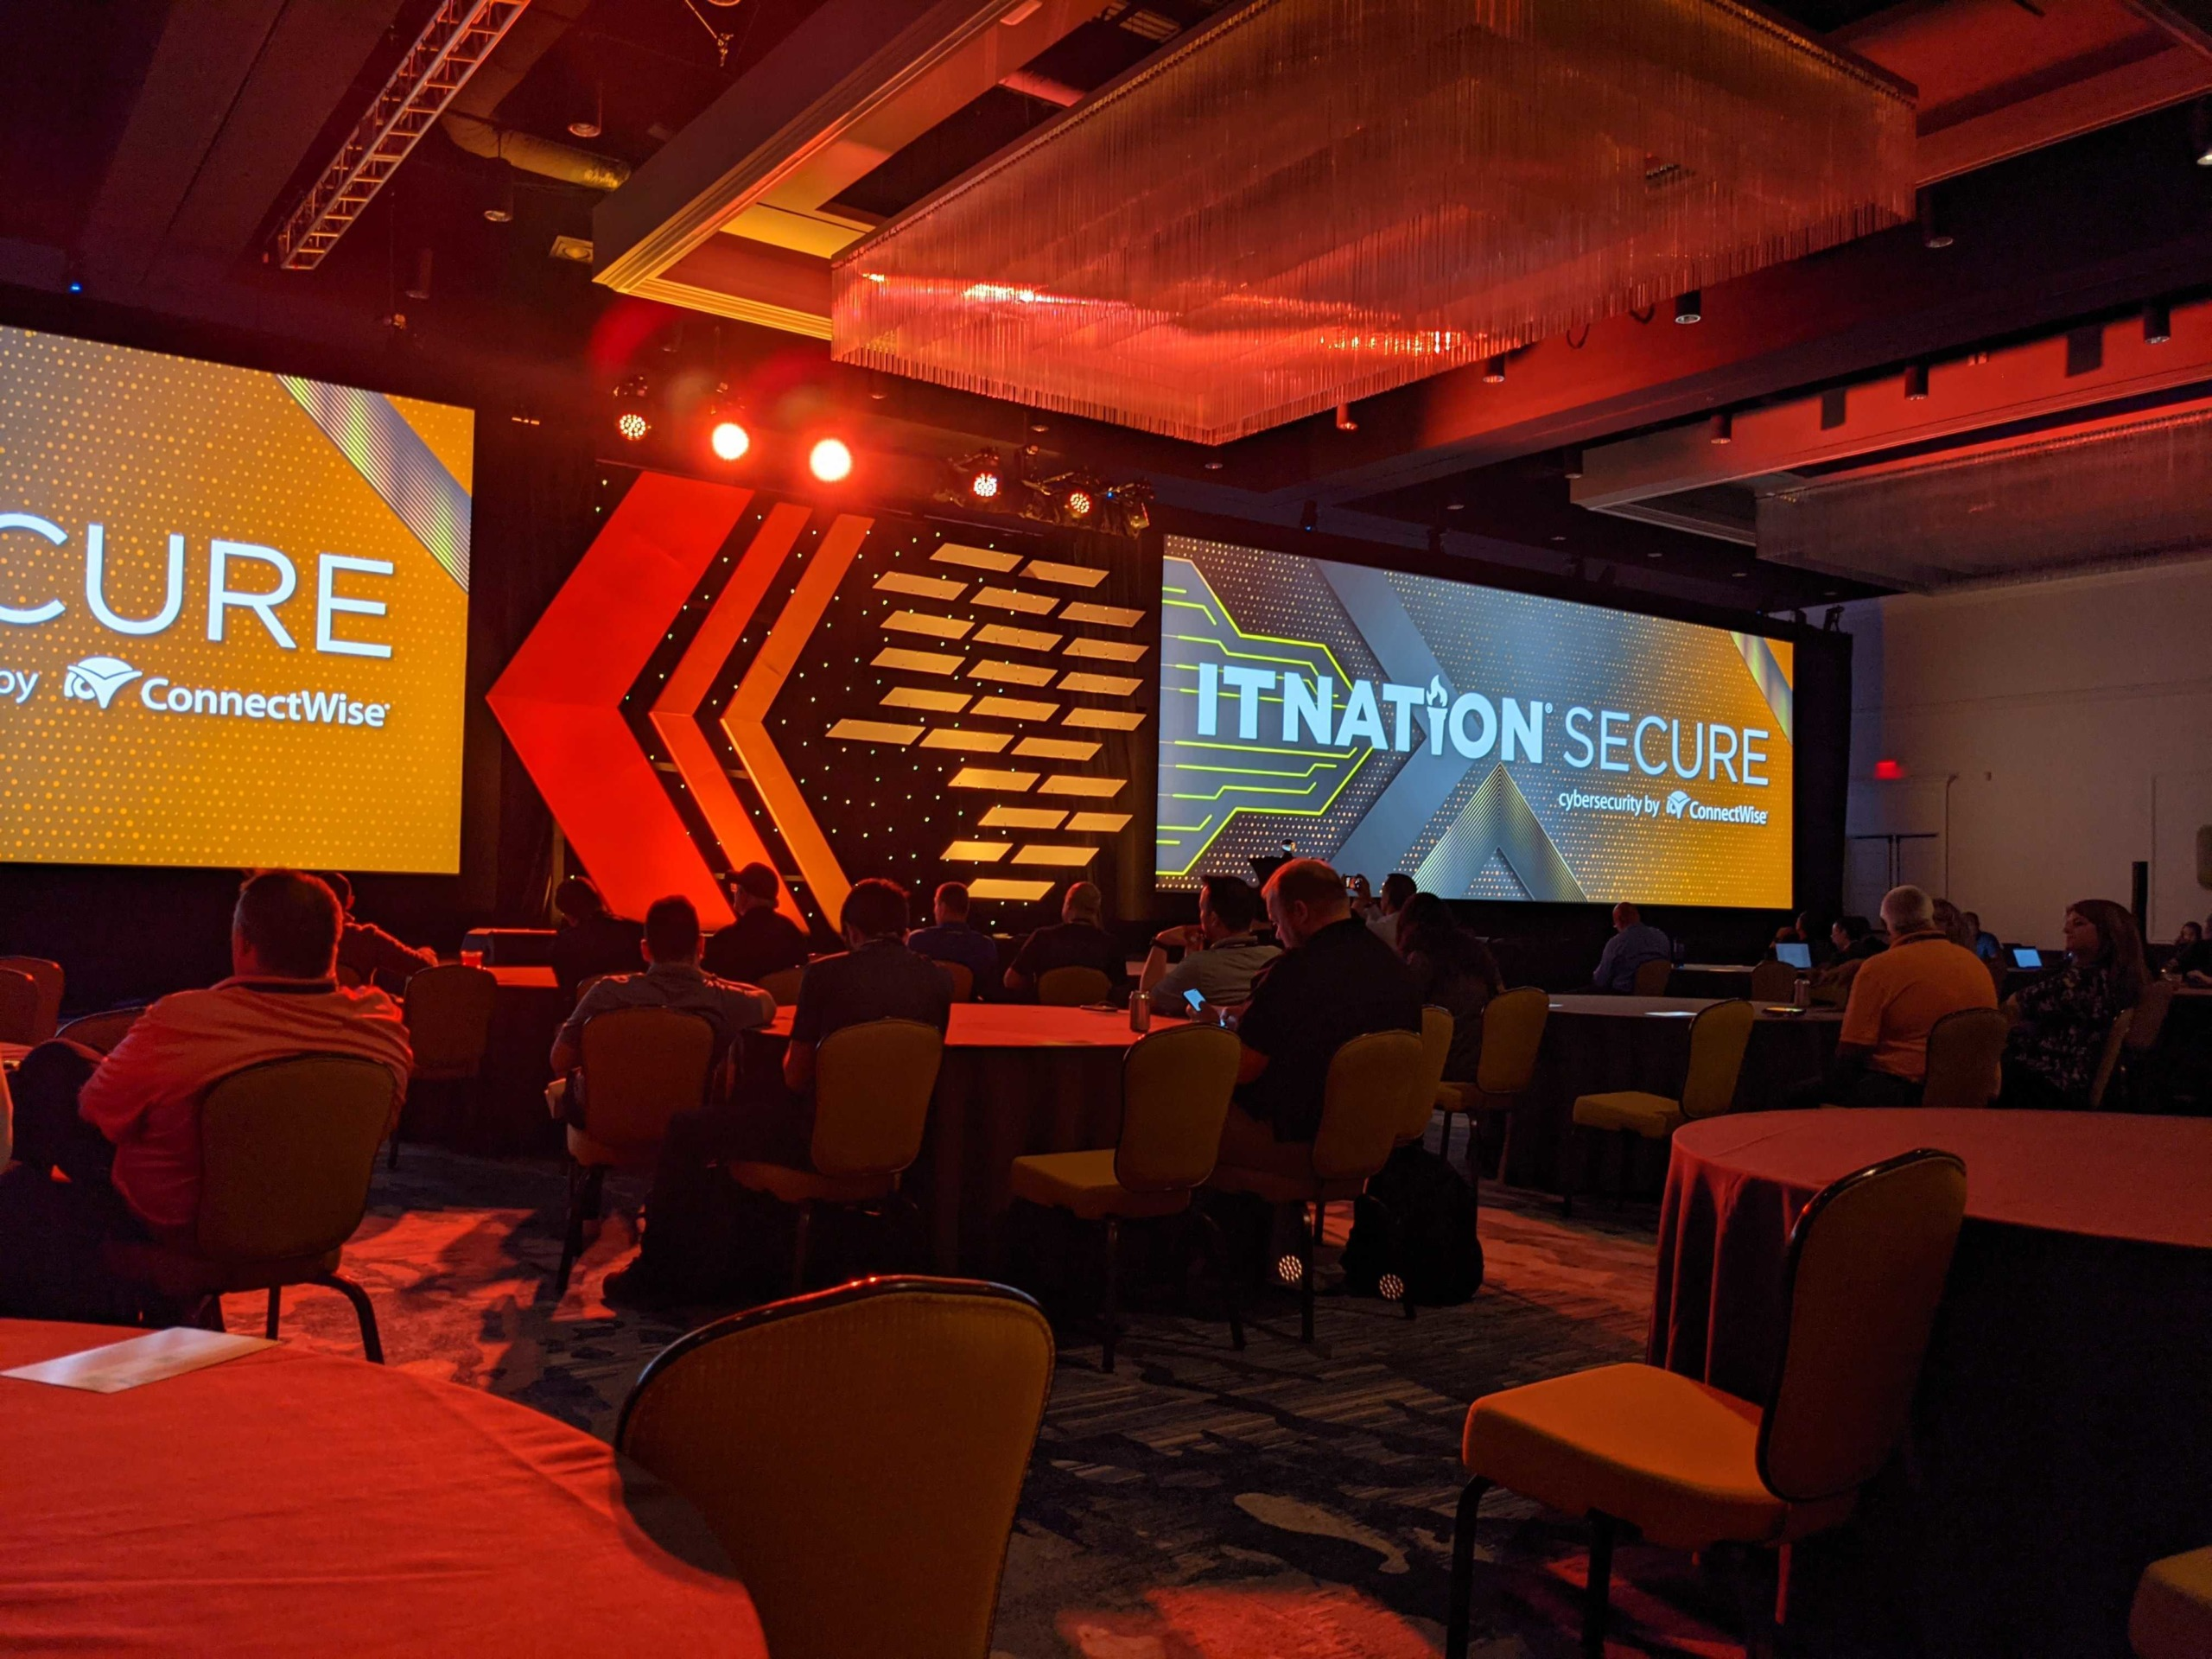 Our 5 Biggest Takeaways from the IT Nation Secure Conference